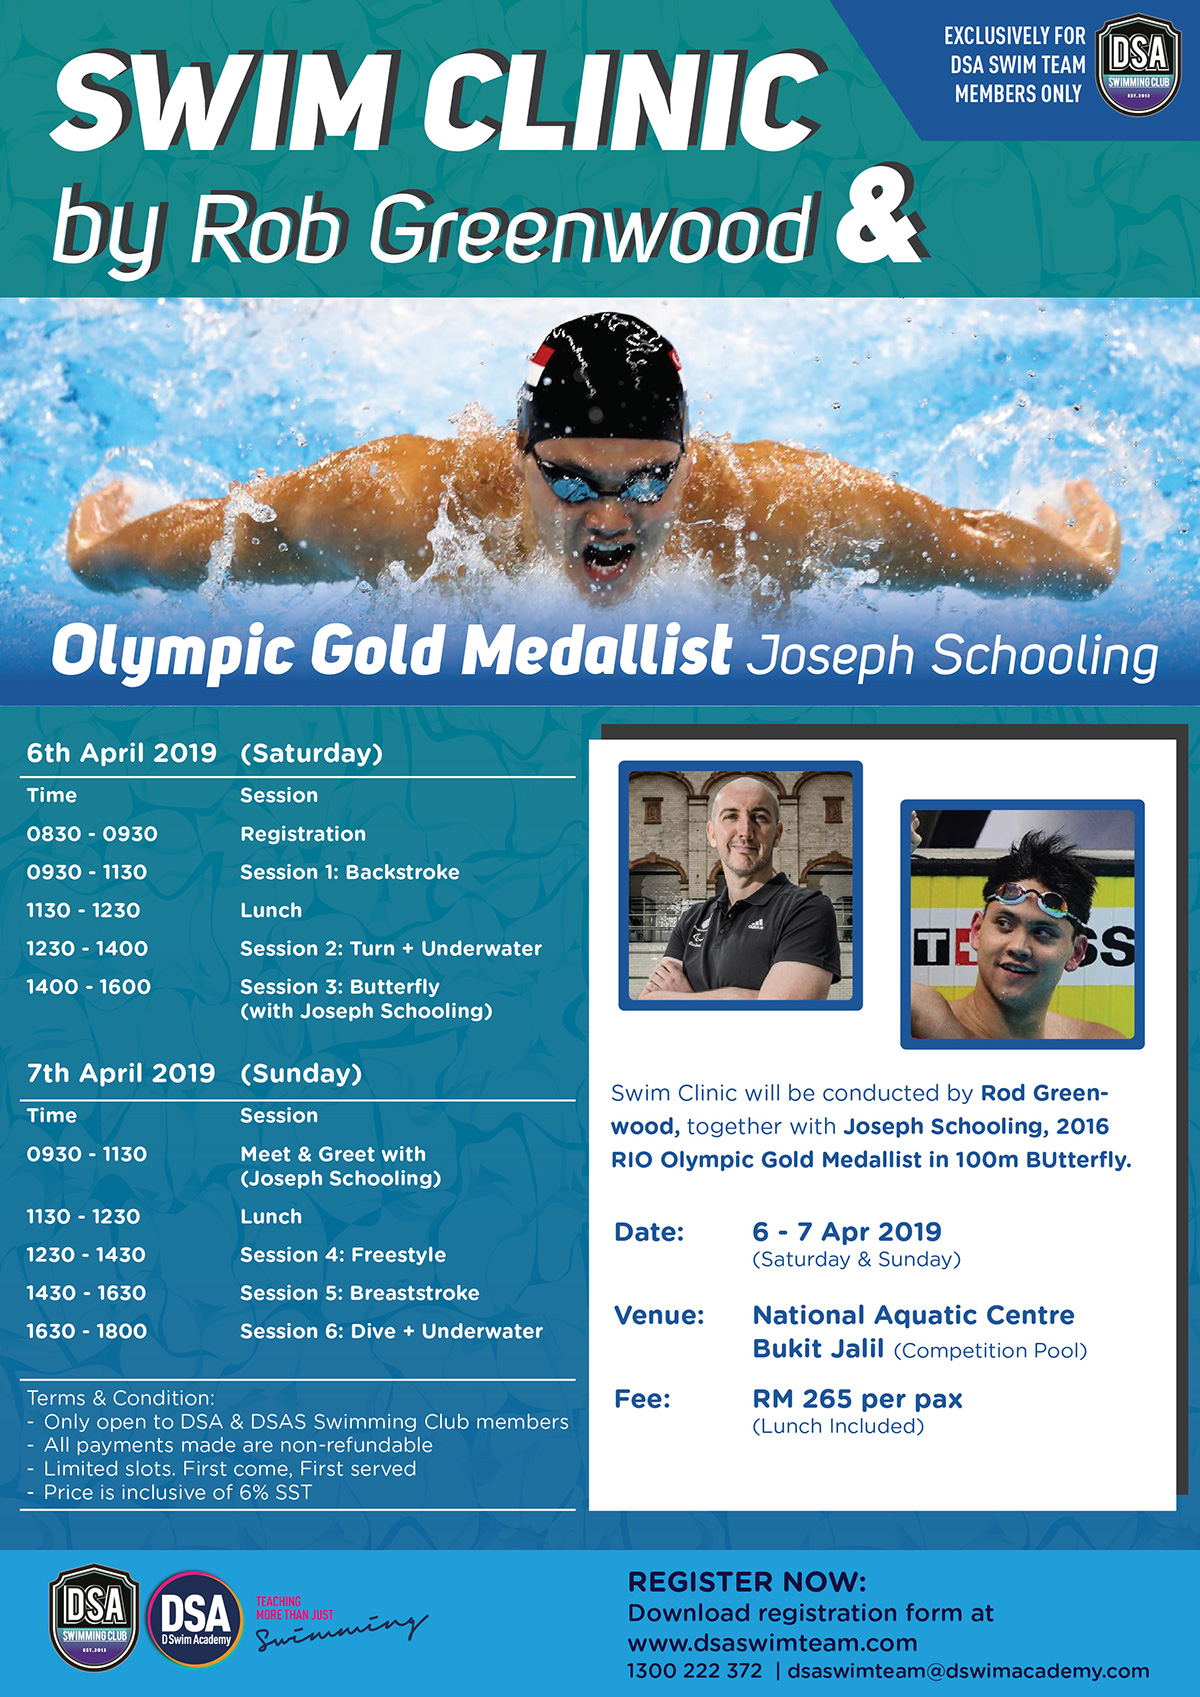 Swim Clinic by Rob Greenwood and Joseph Schooling 2019